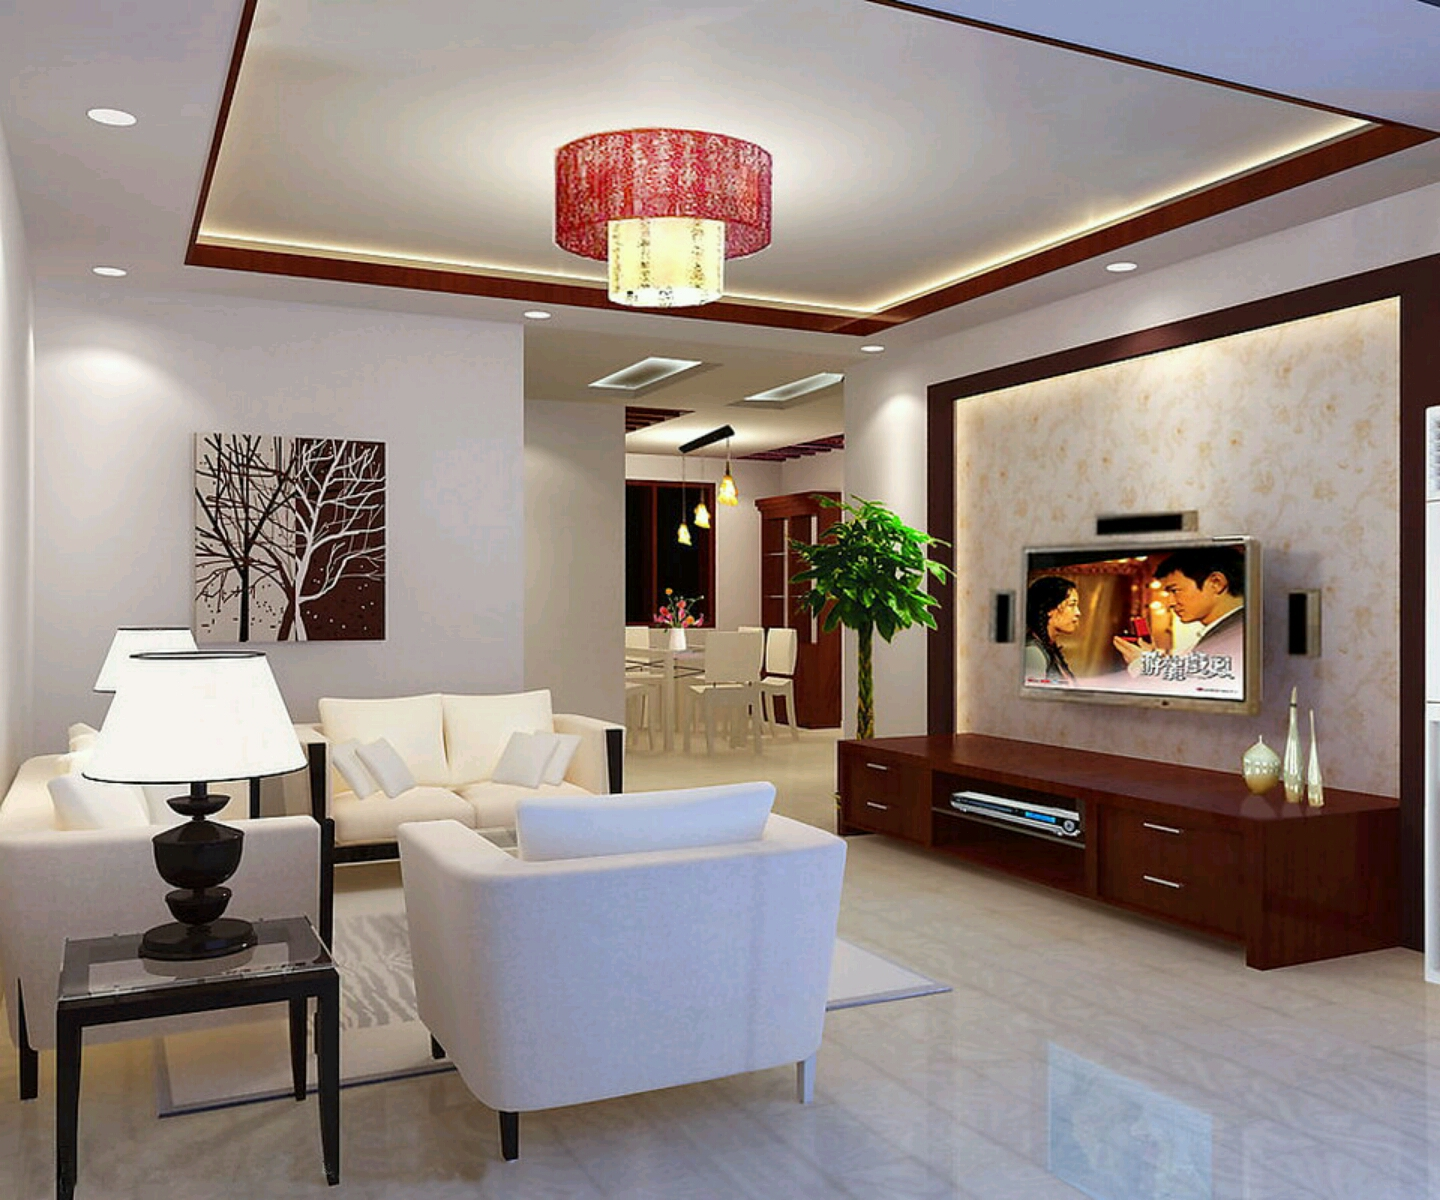 Ceiling Decorating Ideas | DECORATING IDEAS